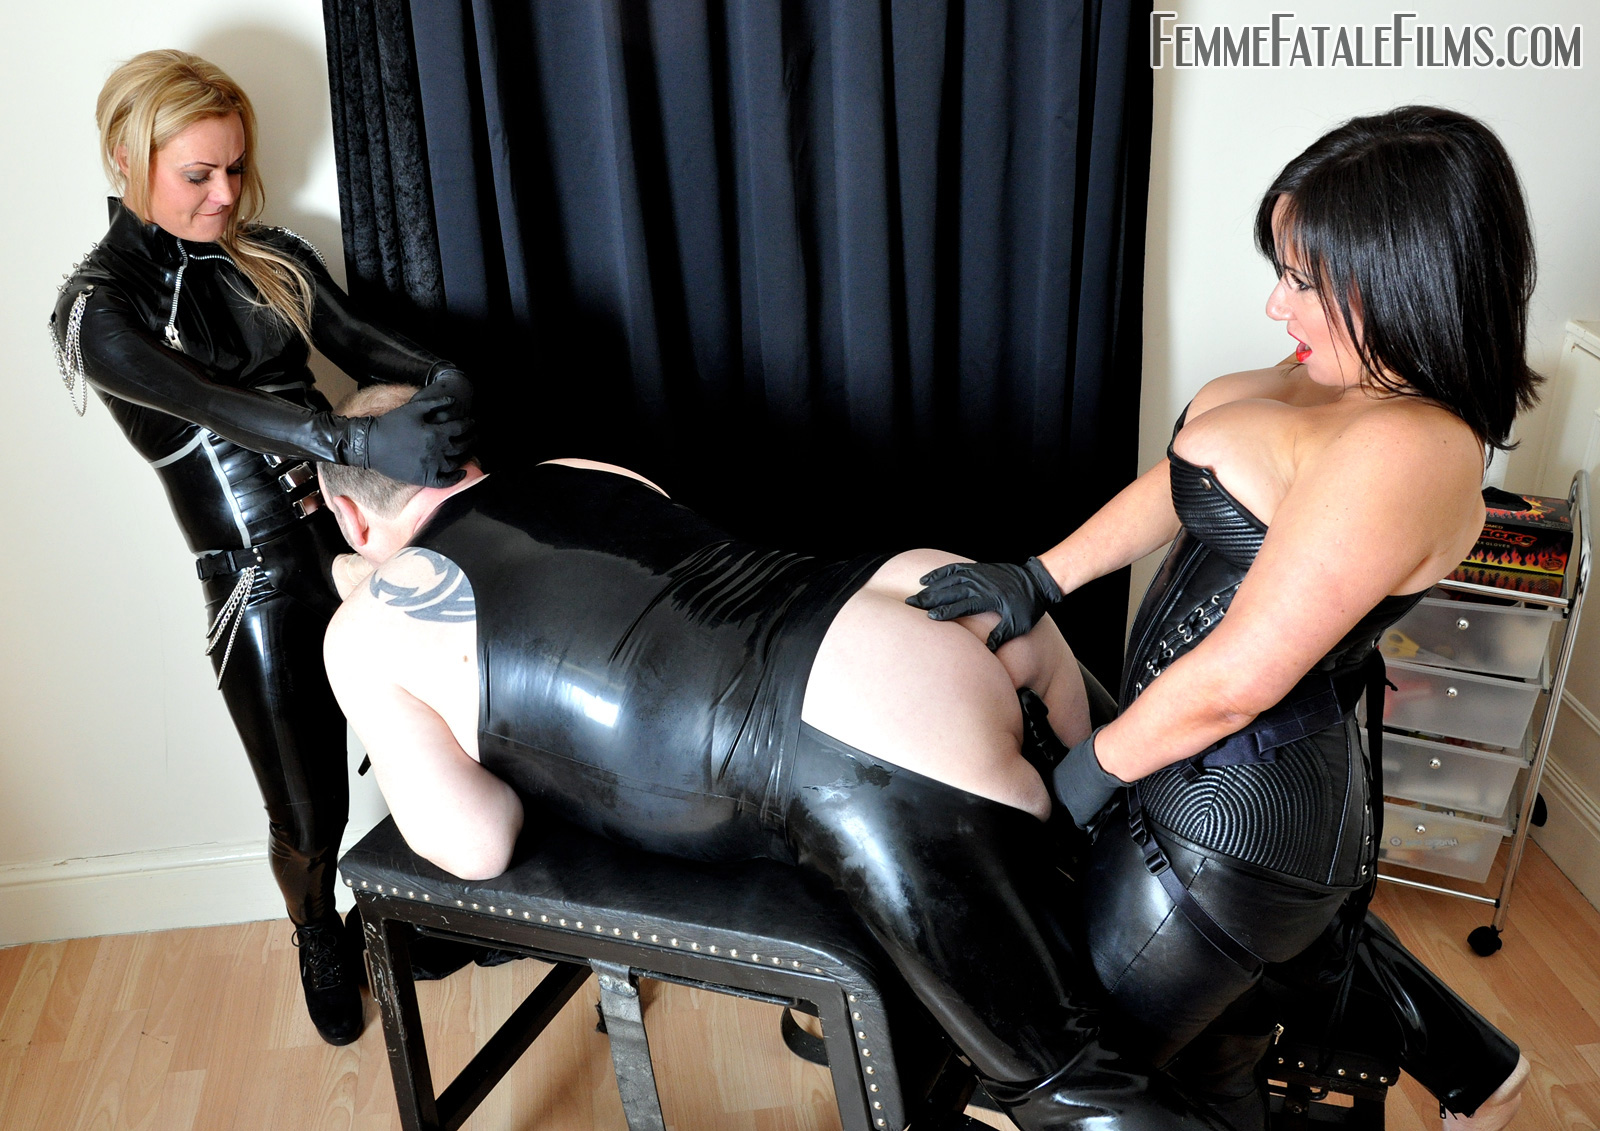 Sexy ass bdsm leather tgp slave gets [censored]d